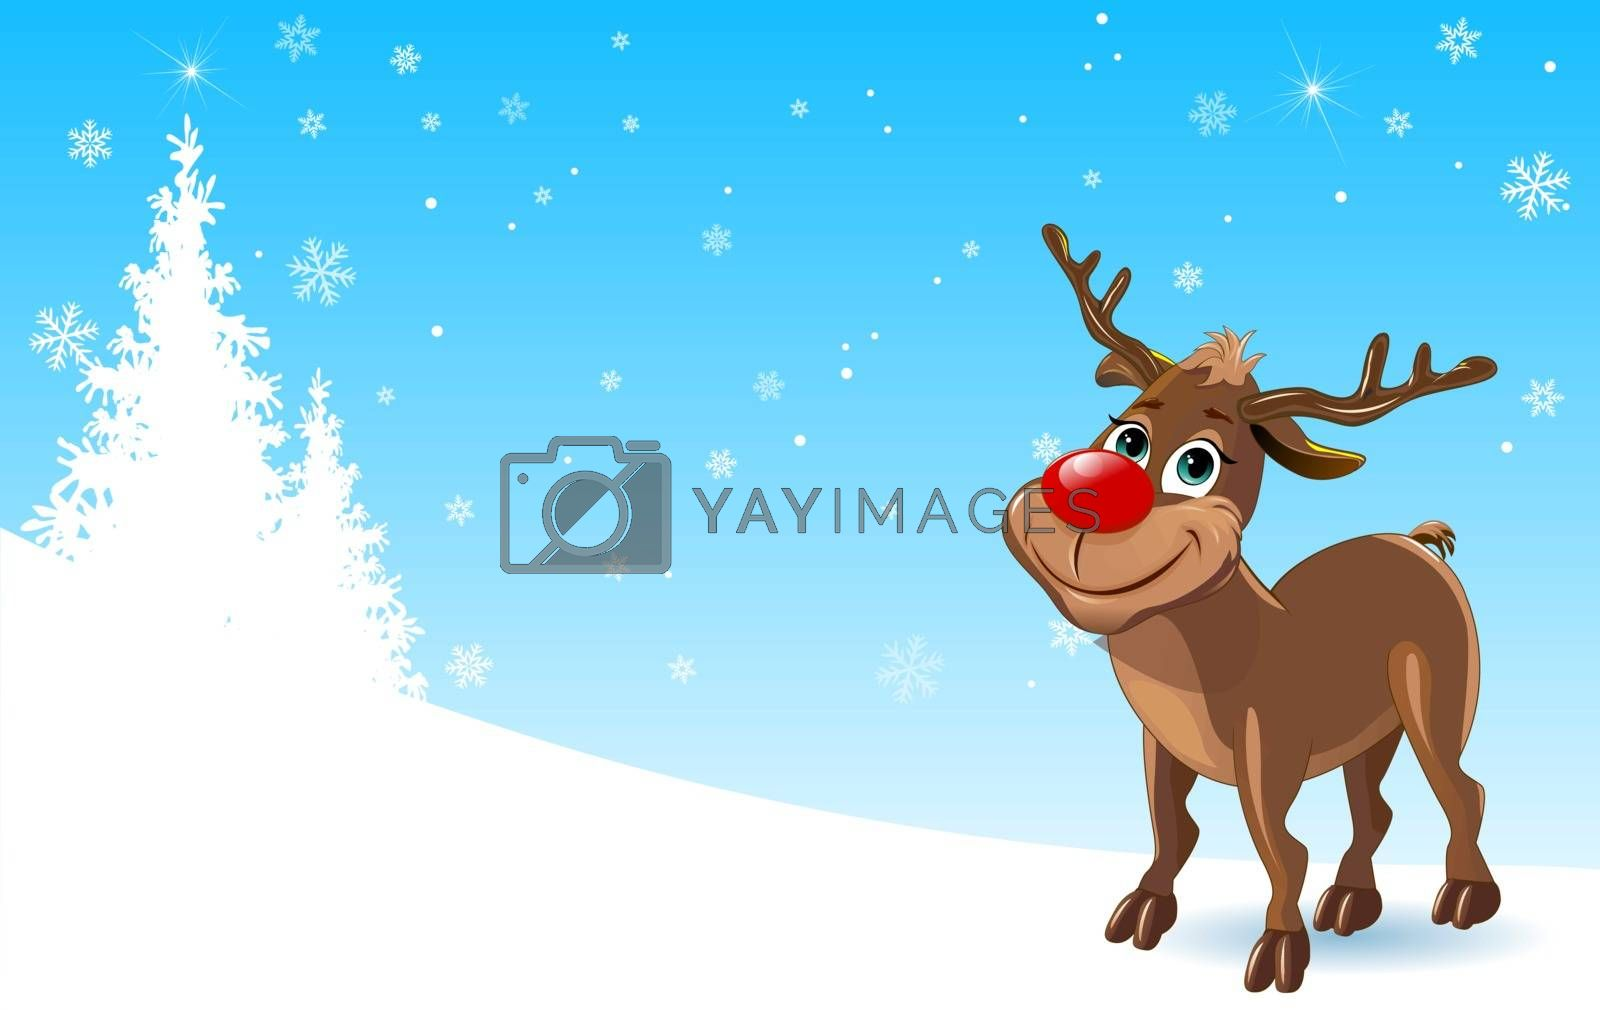 Cartoon deer on a winter background. A deer on the background of snowflakes and firs. A deer with a red nose.